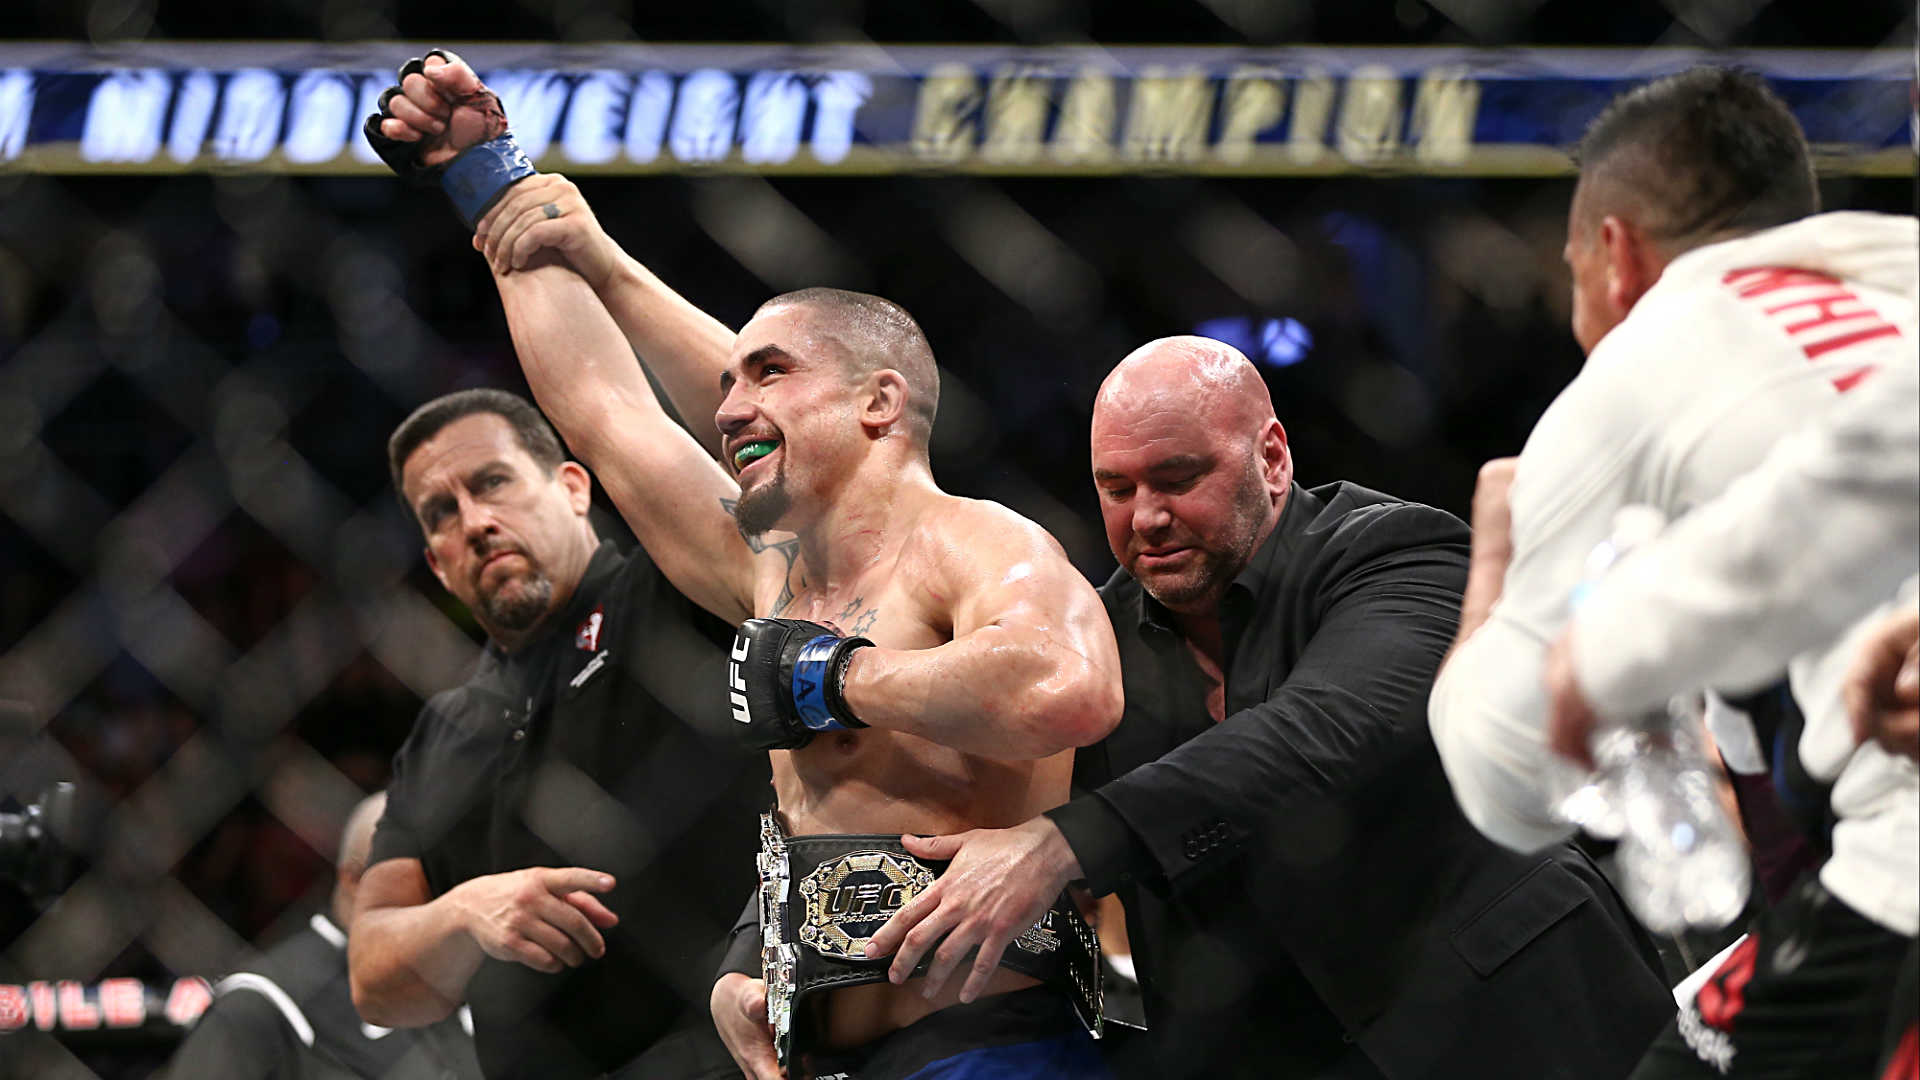 Robert Whittaker Injured, Yoel Romero To Face Luke Rockhold At UFC 221